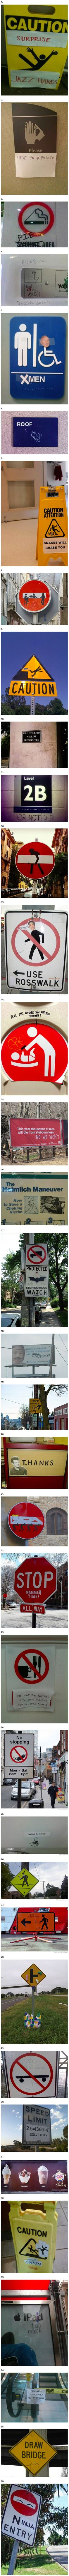 Here are some signs that have been modified in unexpected and geeky ways.